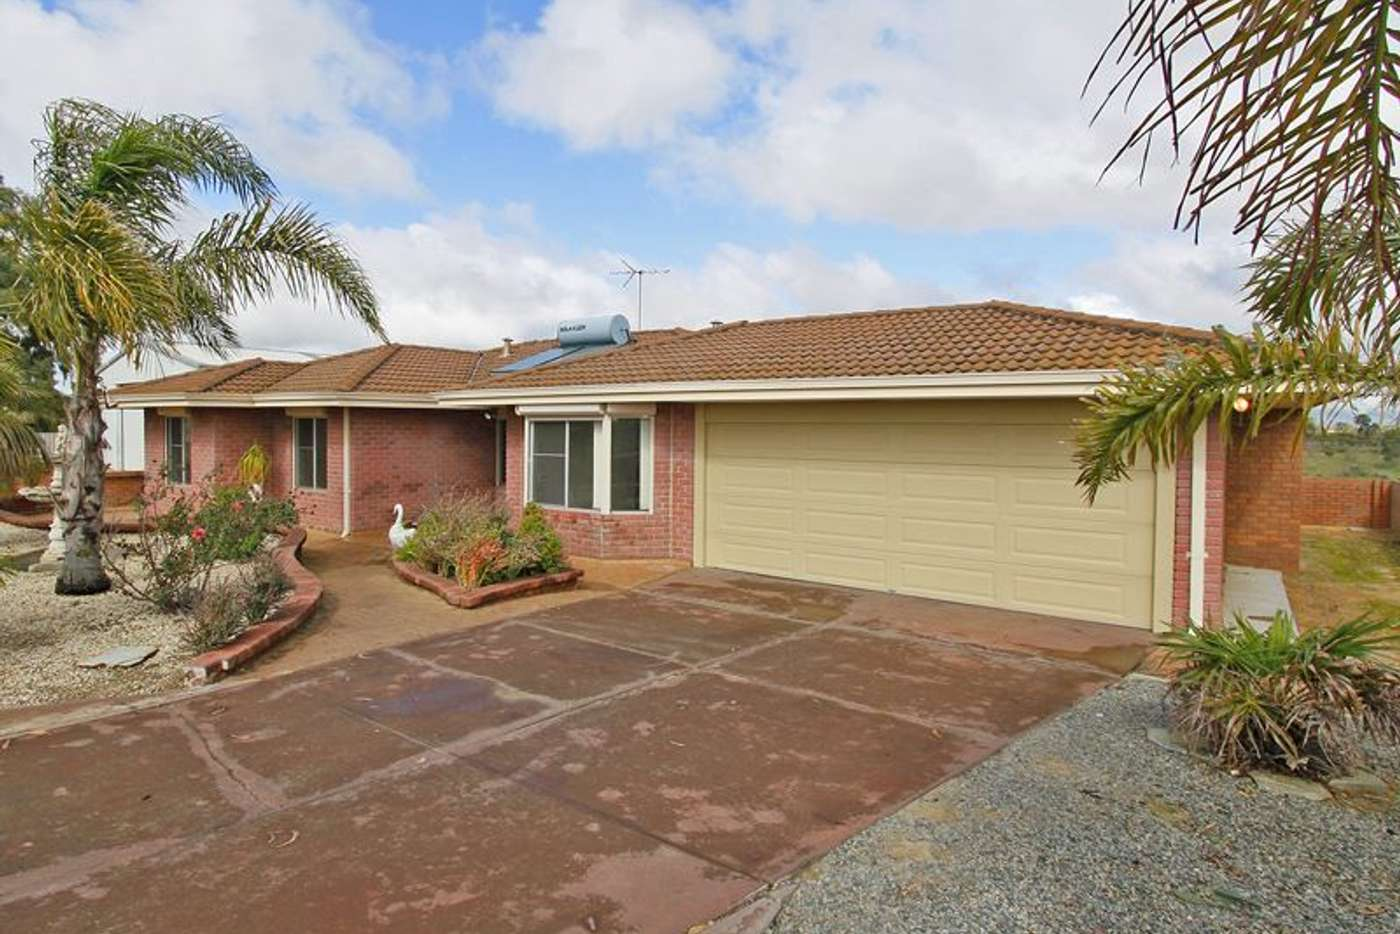 Main view of Homely house listing, 163 Dalison Avenue, Wattleup WA 6166